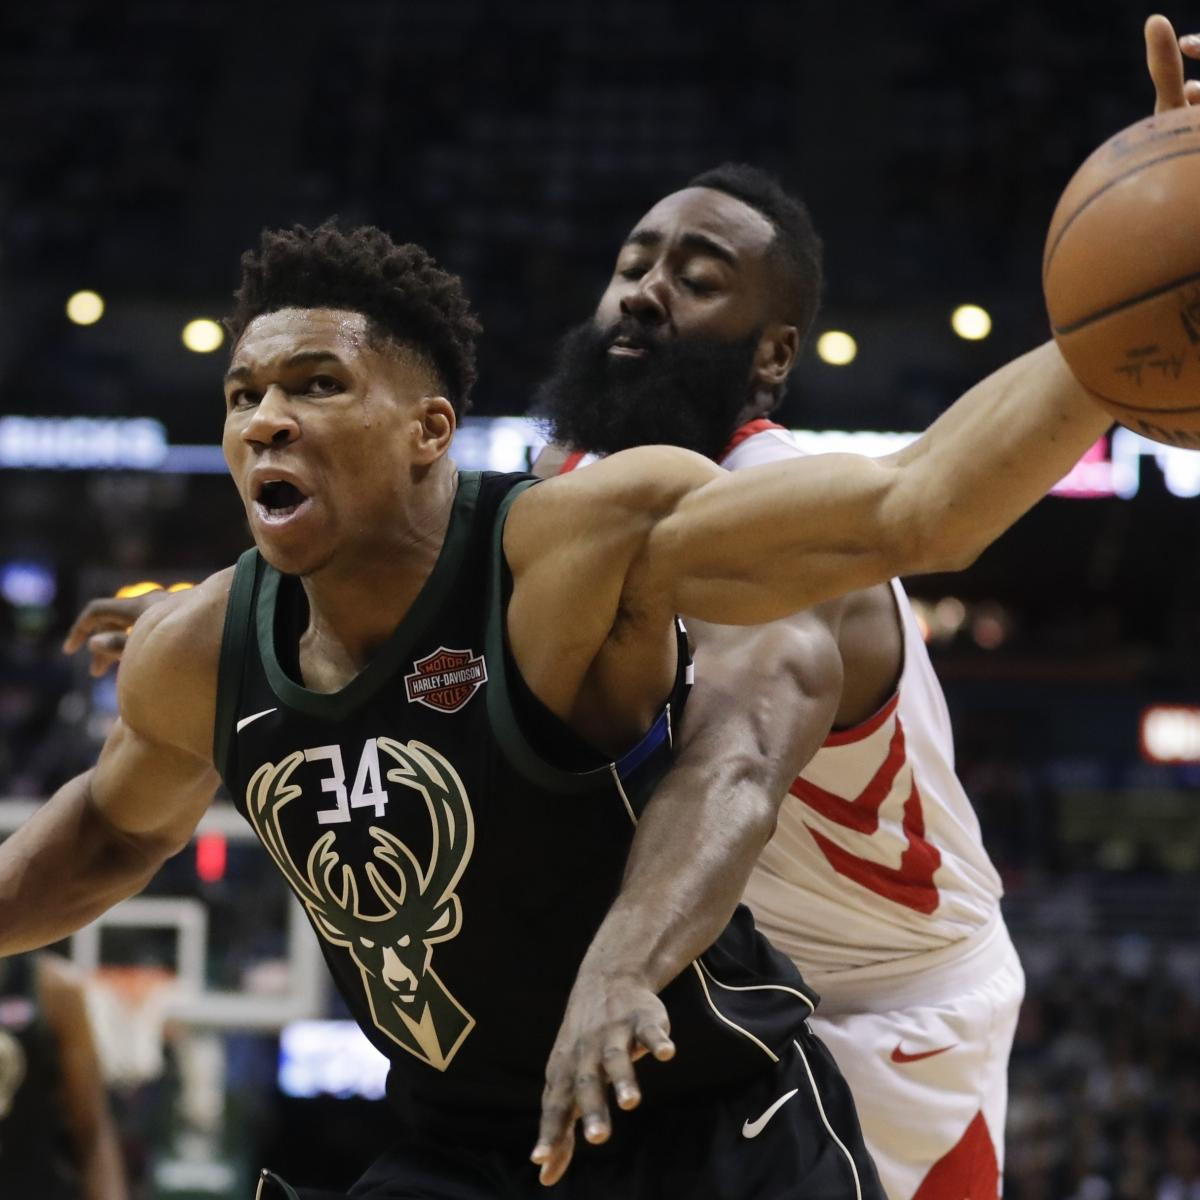 Giannis Downplays Beef with James Harden: 'I'm Just Trying to Do My Job'